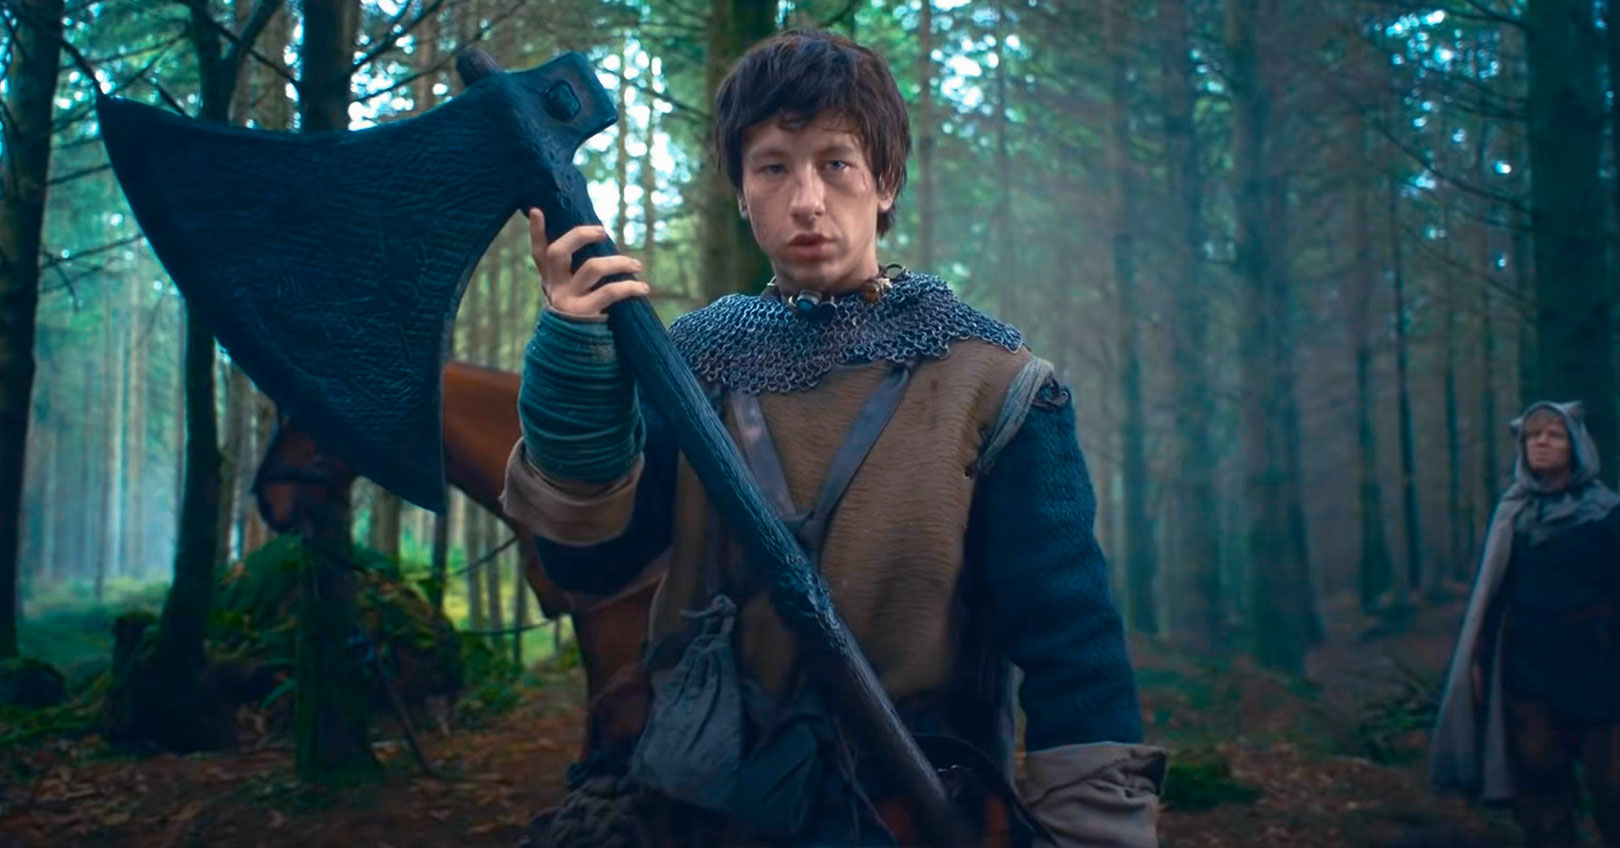 The Green Knight - Barry Keoghan